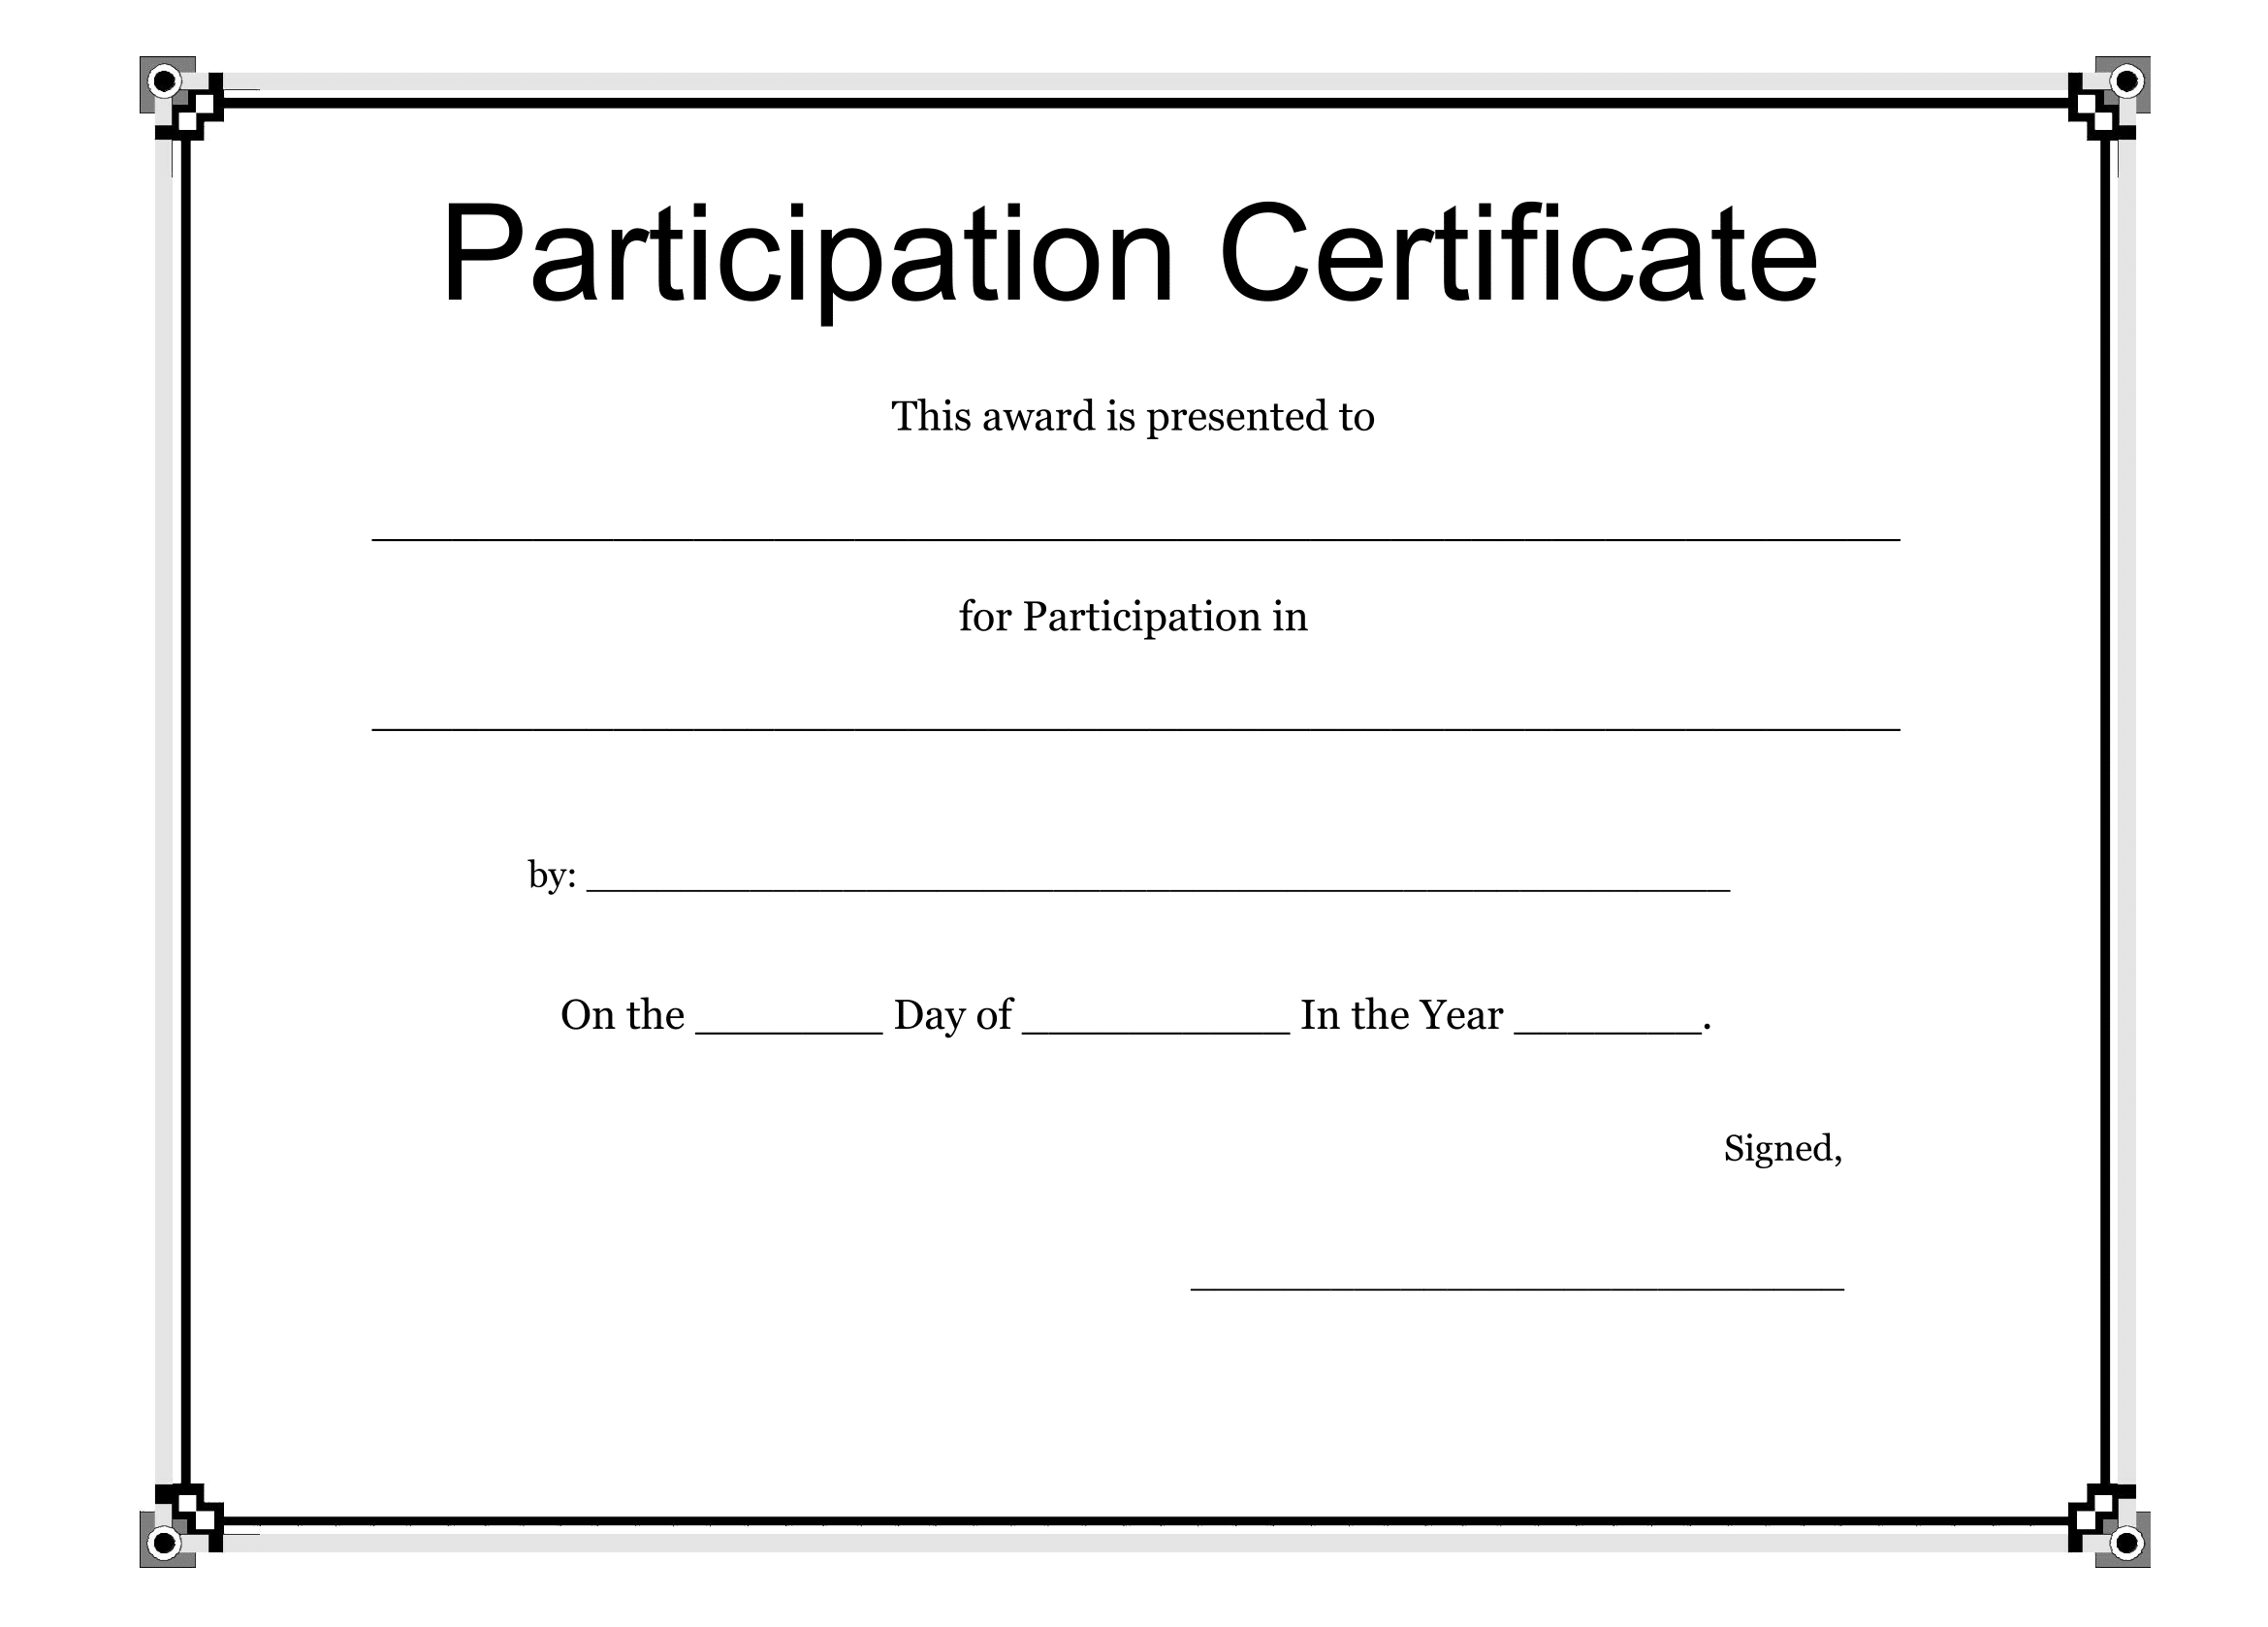 Participation Certificate Template FREE Download – Certificate of Participation Template